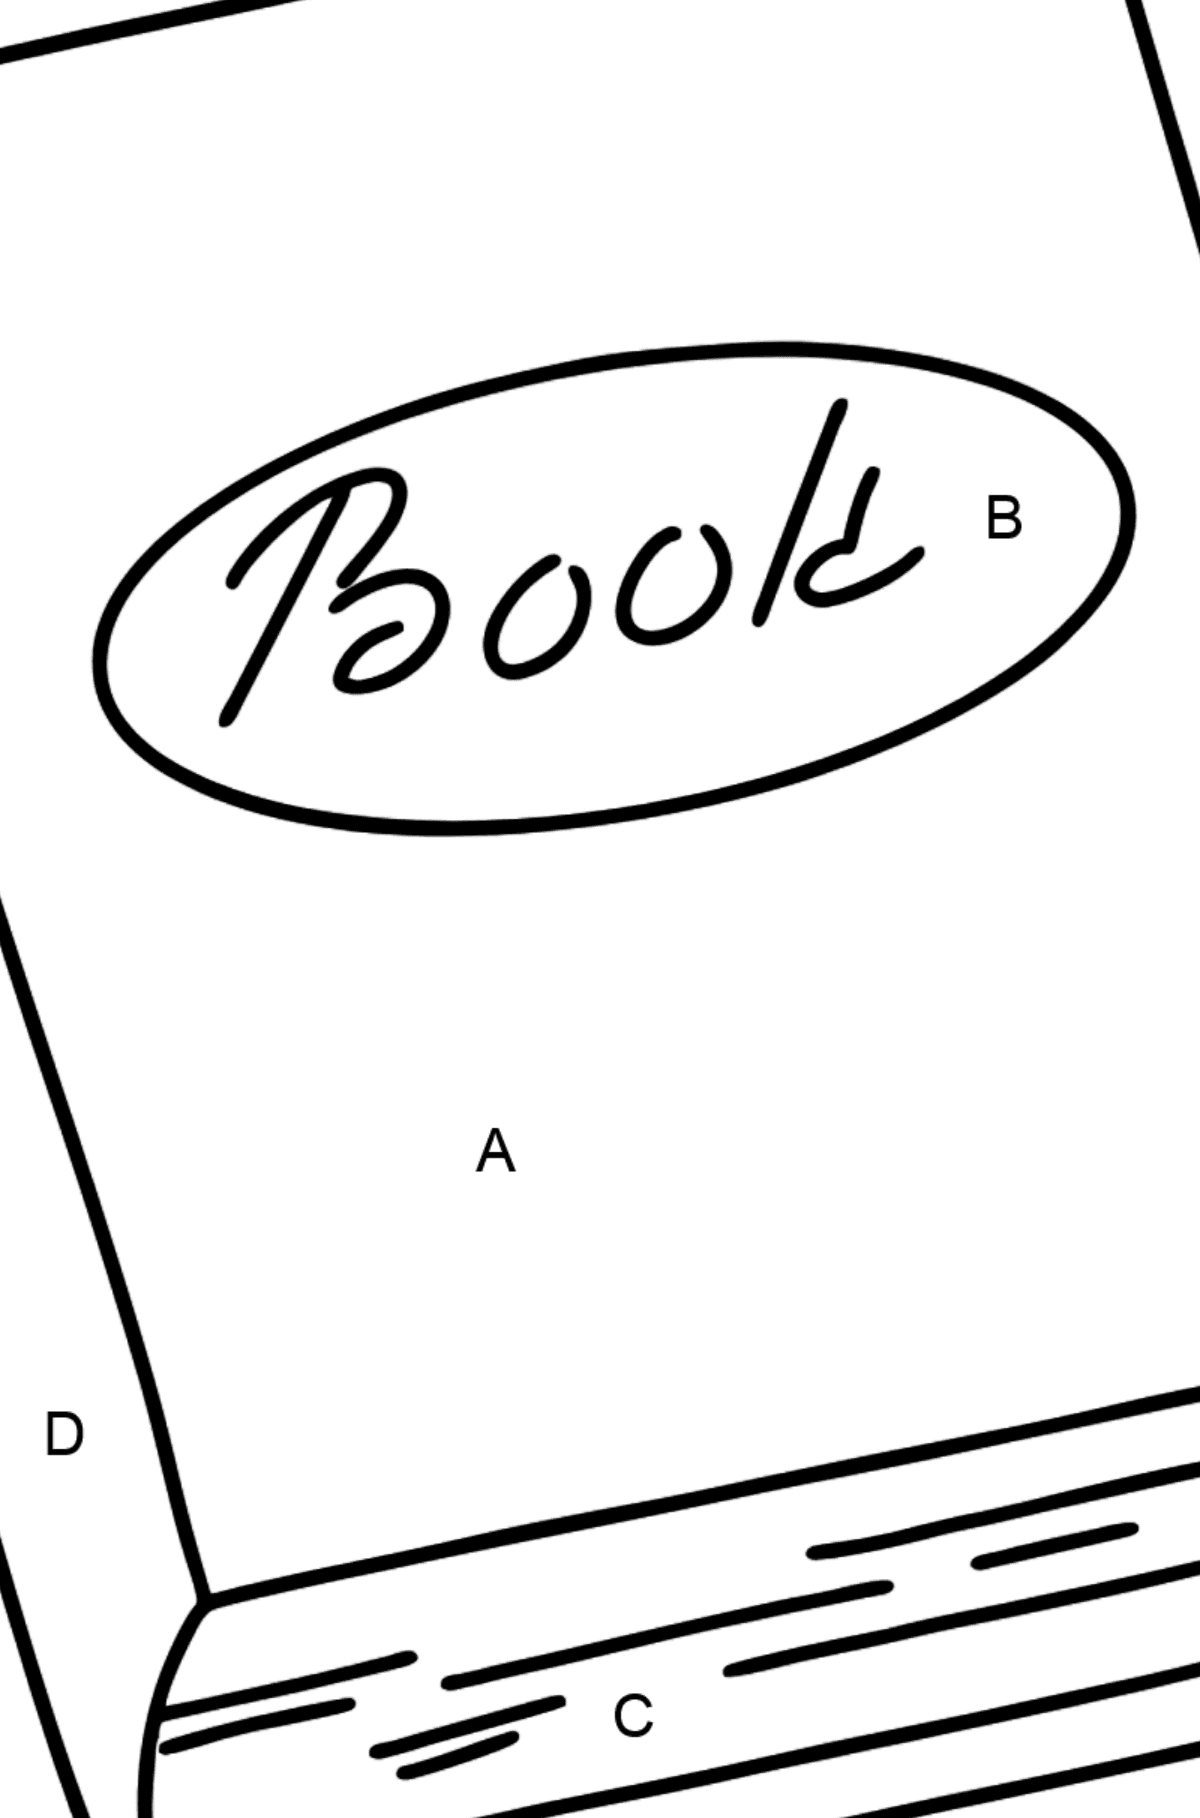 Book coloring page - Coloring by Letters for Kids